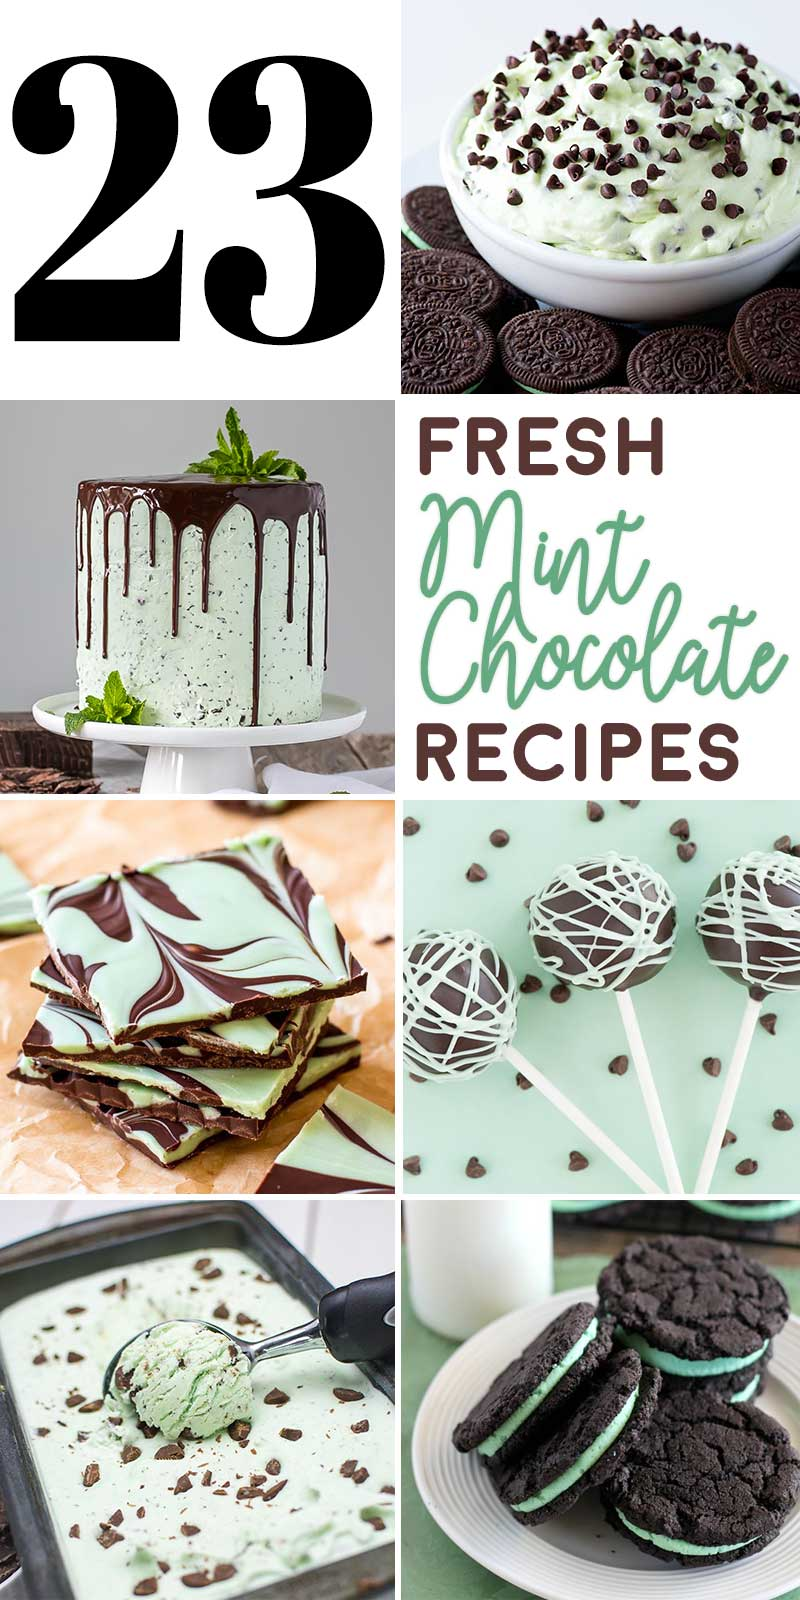 23 Fresh Mint Chocolate Recipes! Whether it's the peak of summer or the festive winter, this collection of mint chocolate recipes has everything you'd want for a fresh treat craving! | HomemadeHooplah.com